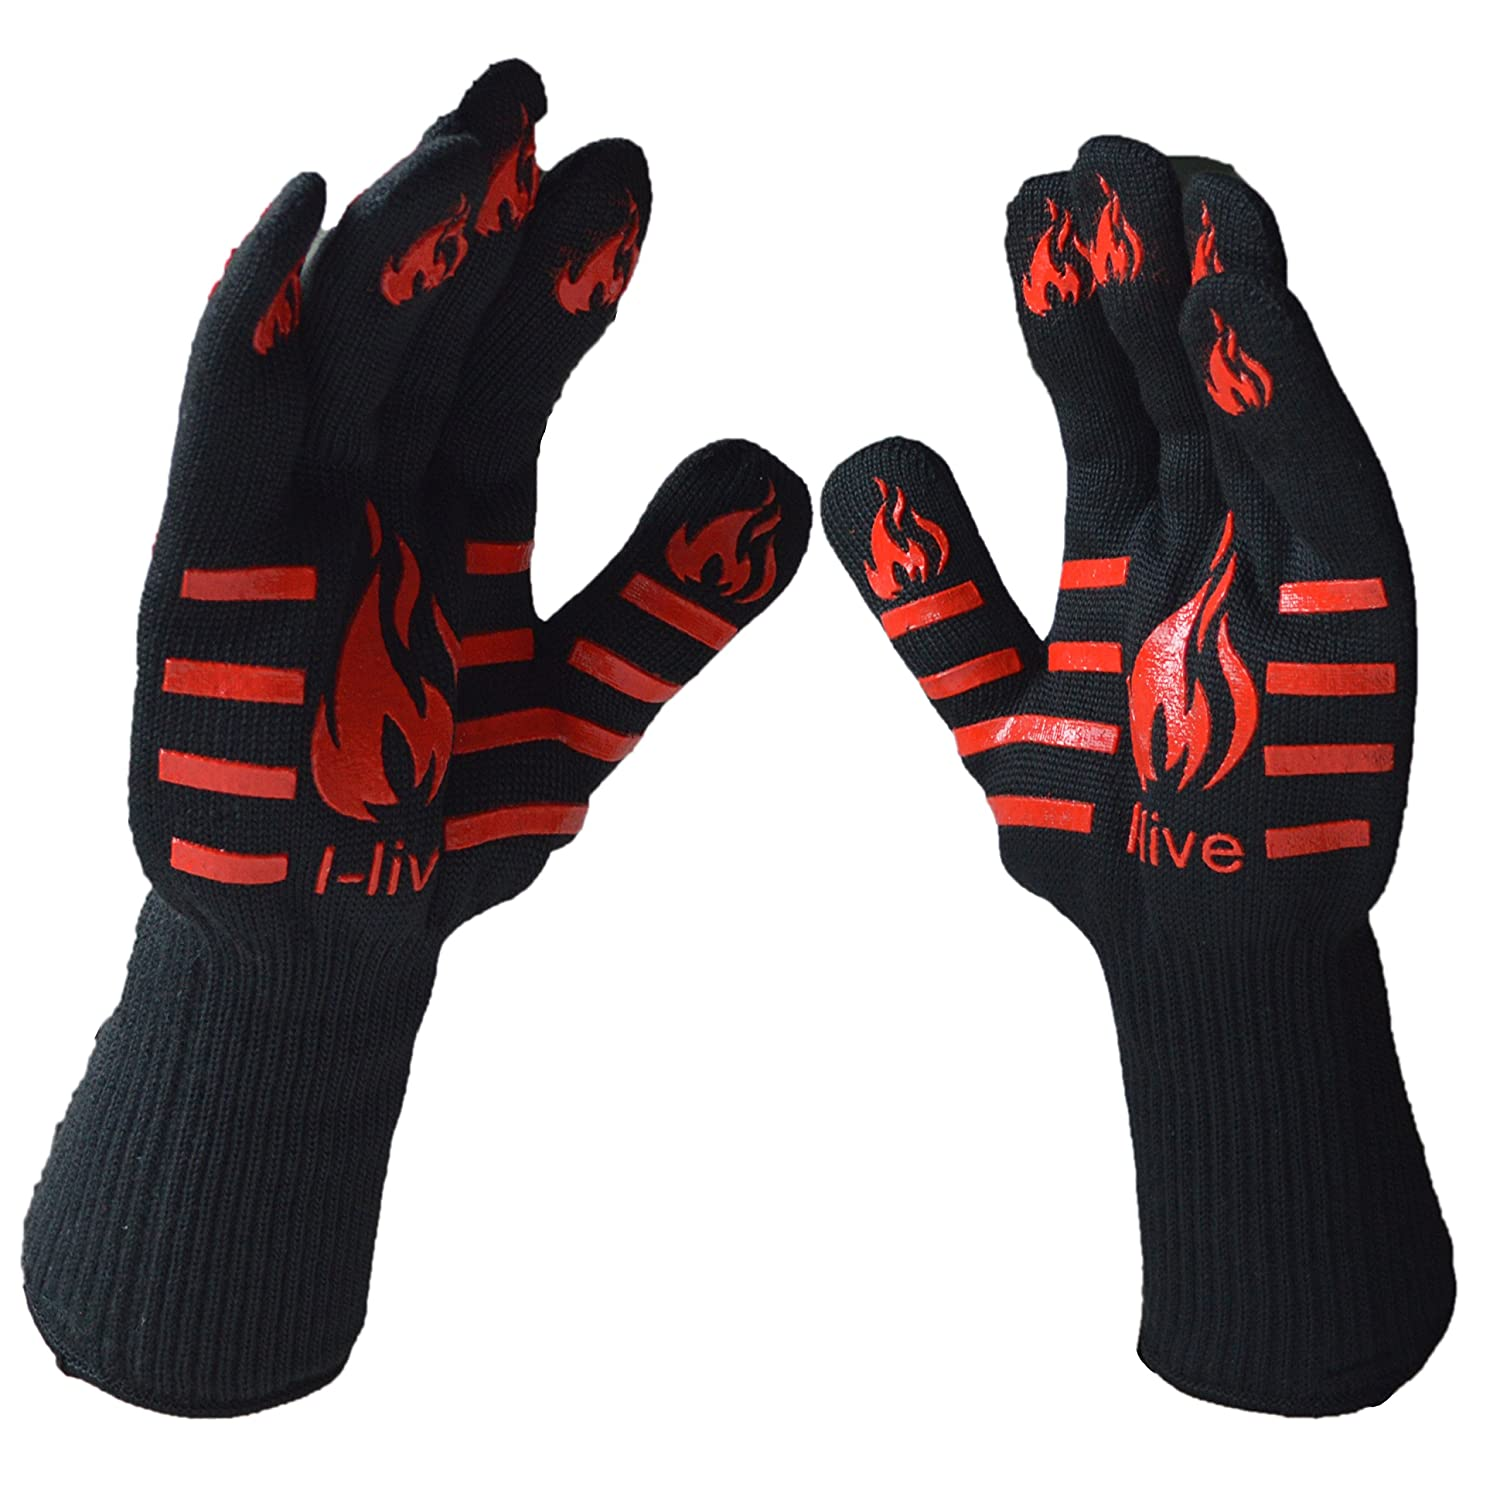 I-Live 932°F Extreme Heat Resistant Gloves Set of 2 - Kitchen/Outdoor Hand Protection Gloves with Five Fingers - Use As Oven Glove, Pot Holders, BBQ Grilling Gloves for Grilling,Cooking,Backing